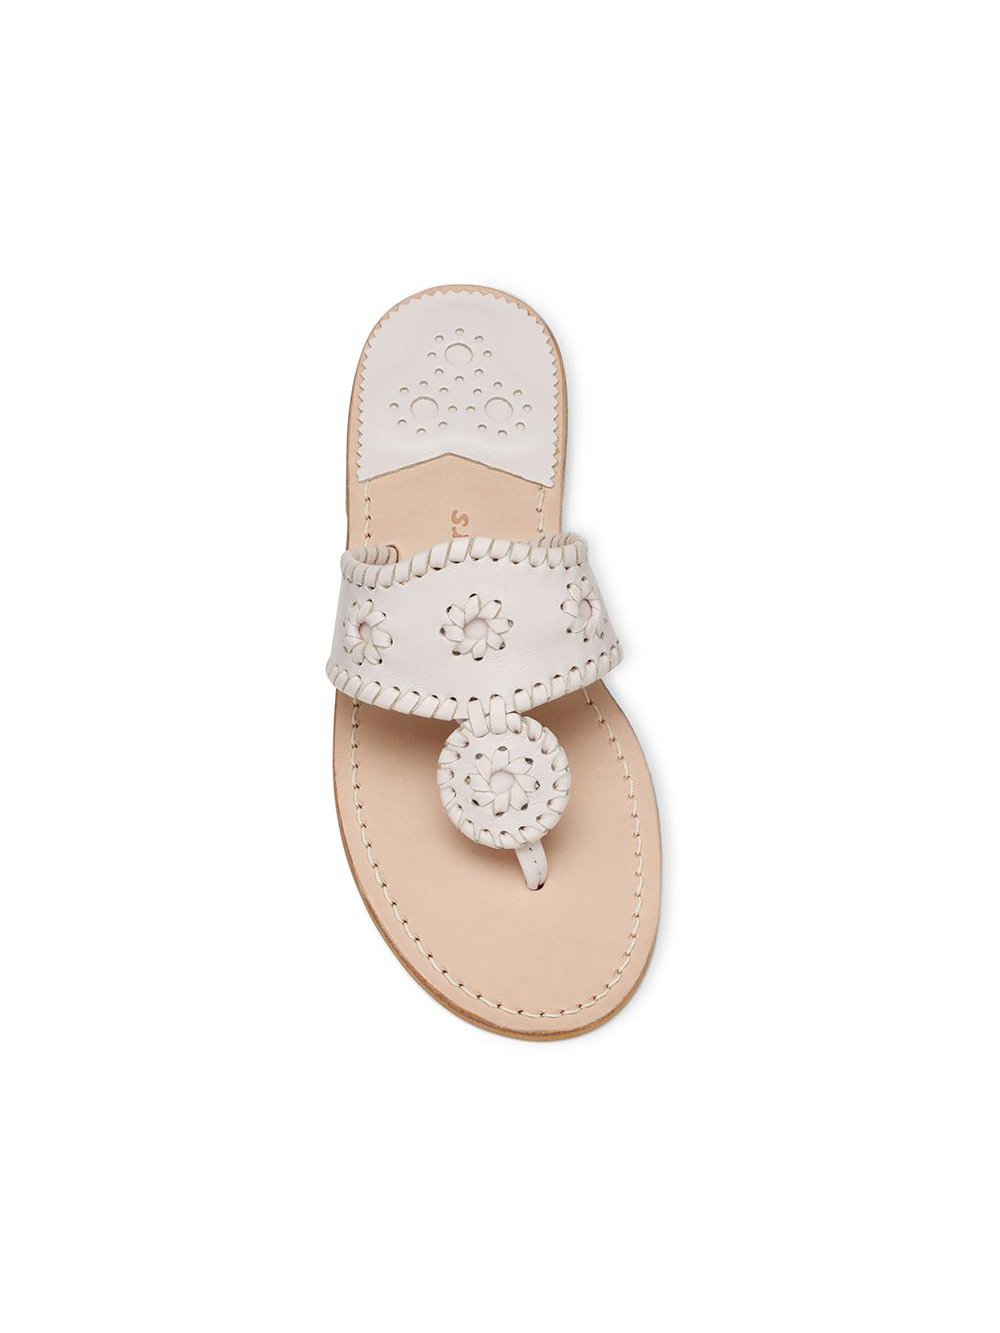 Jacks Flat Sandal - Pale Blush